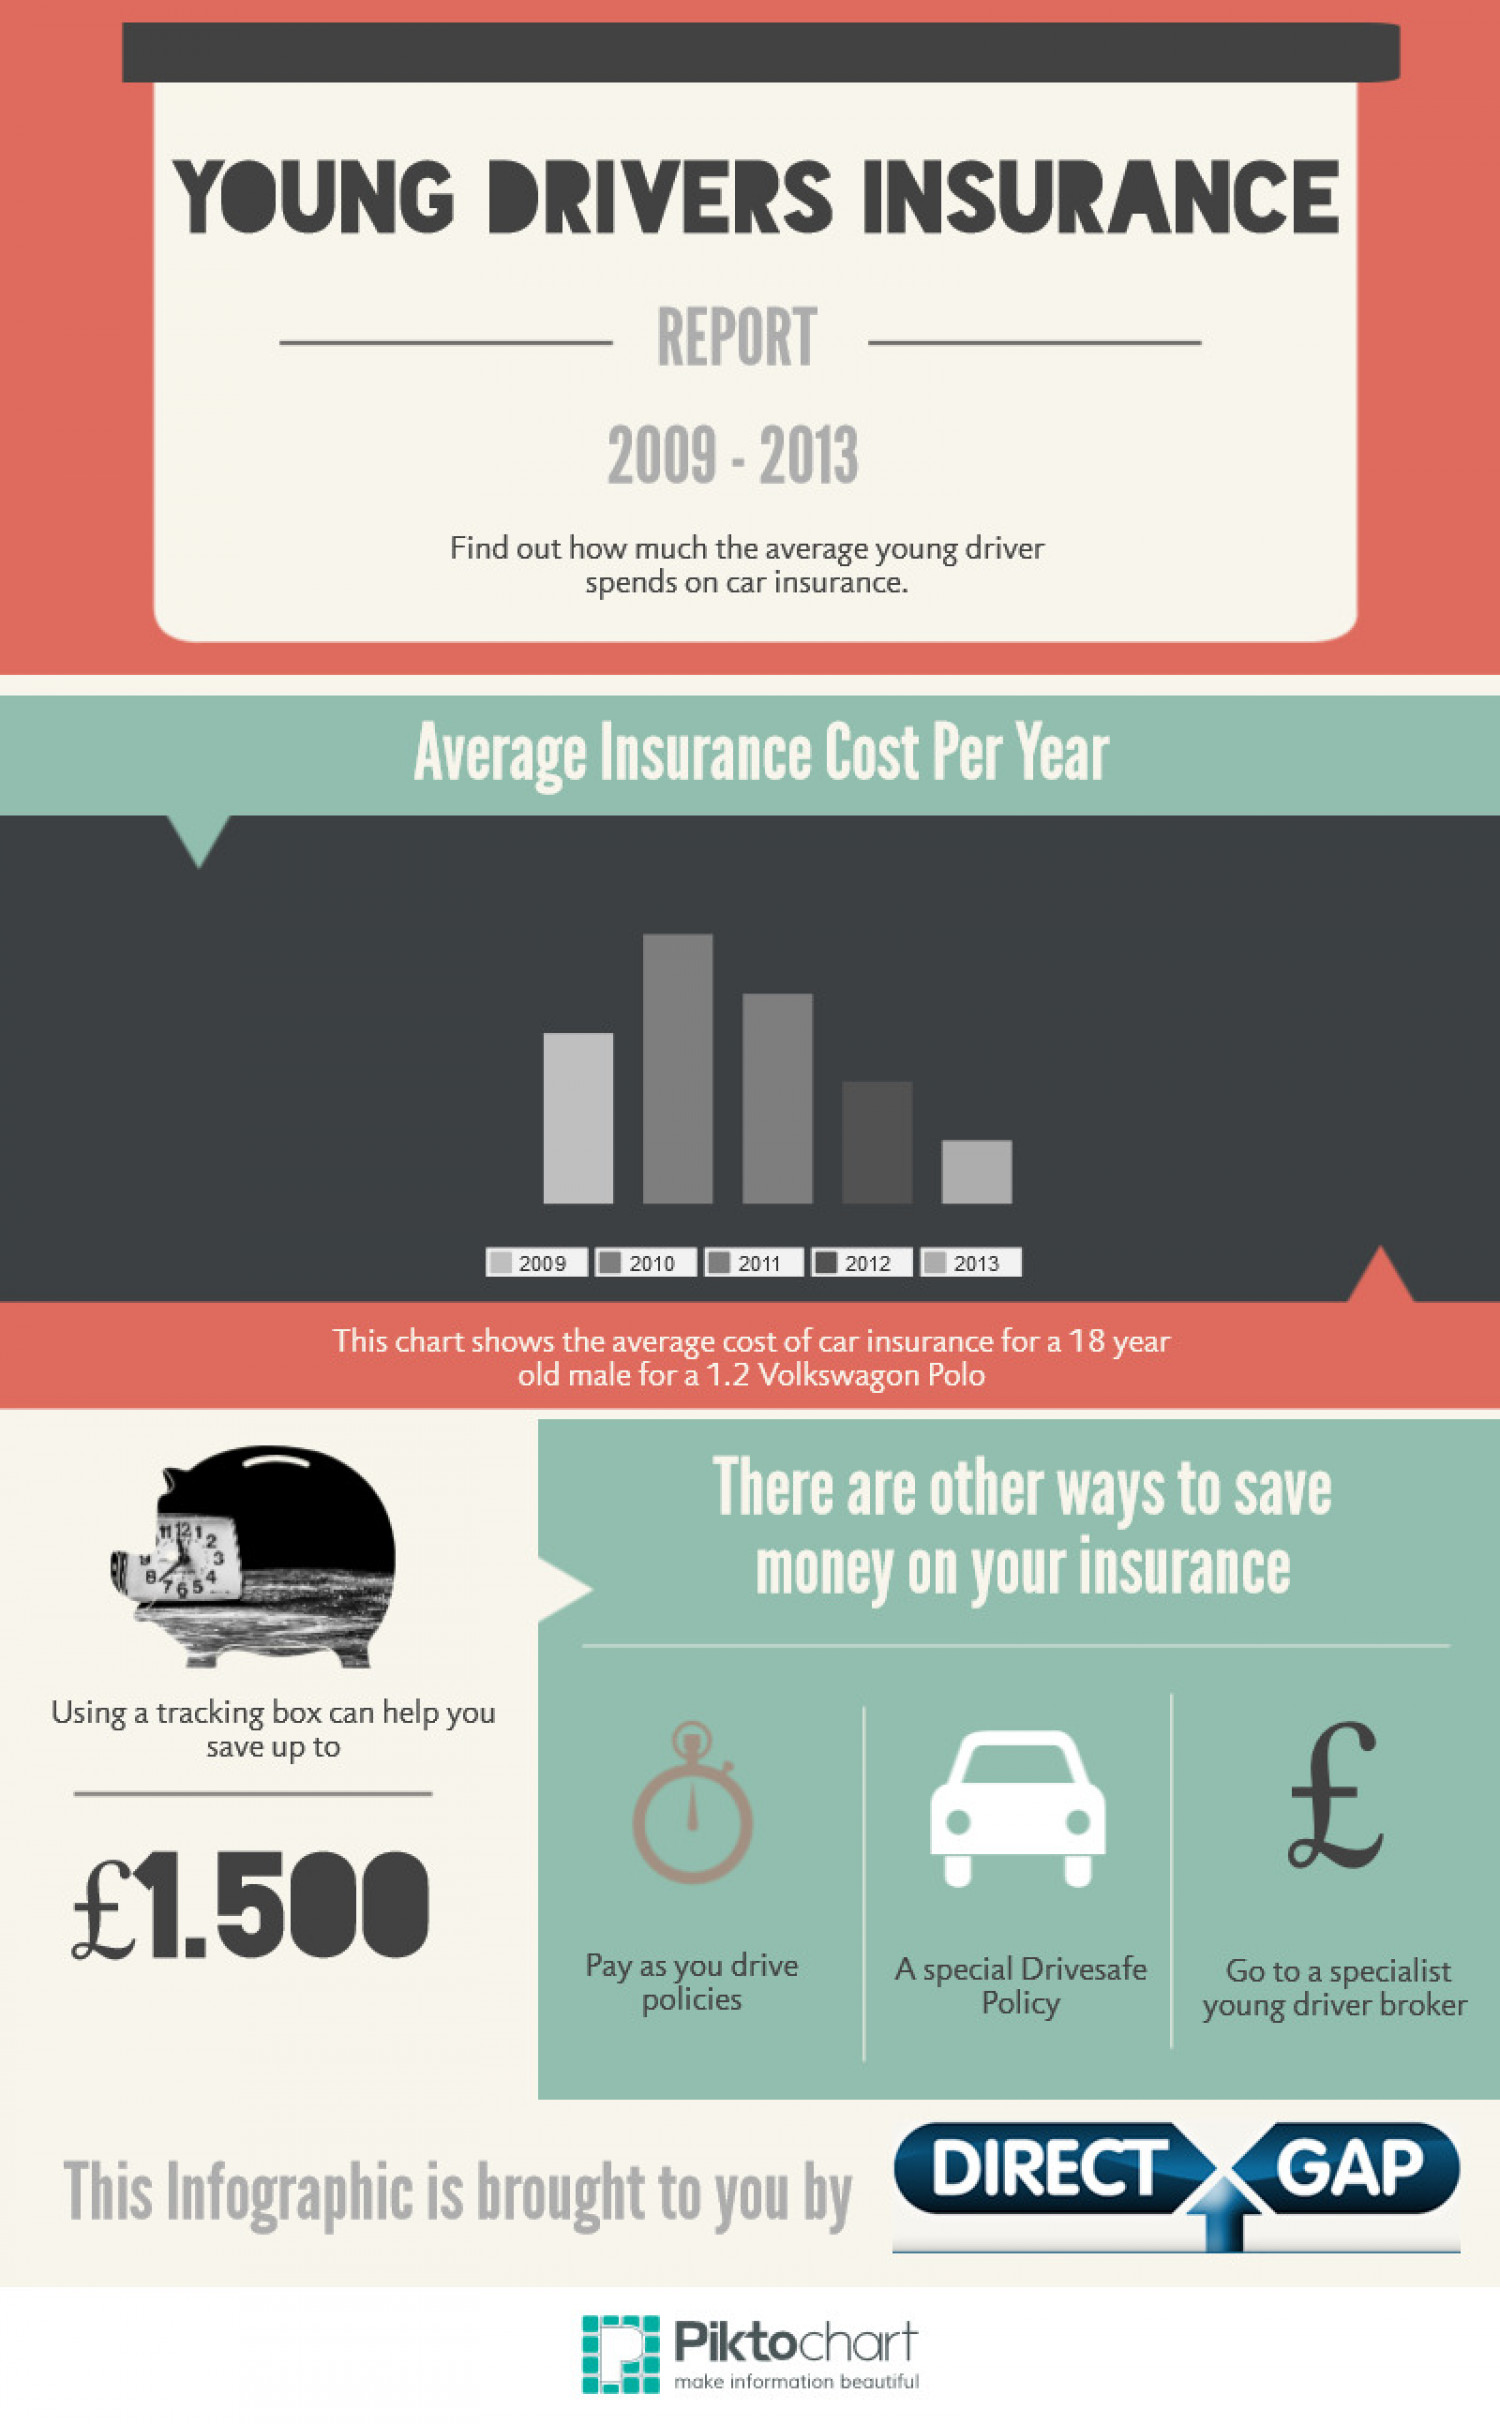 Young Drivers Insurance Review Infographic